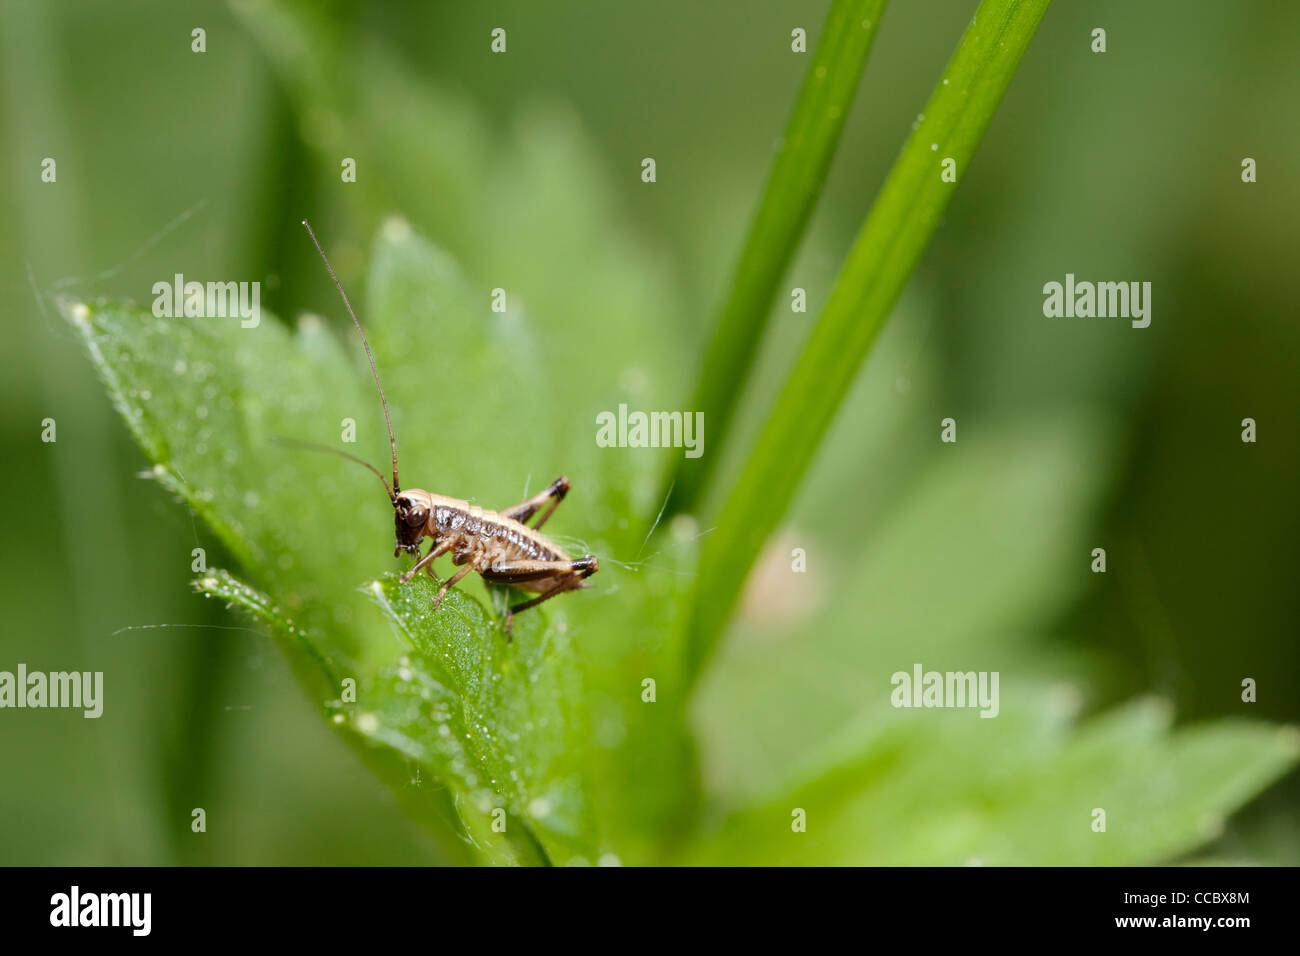 Cricket resting on plant - Stock Image